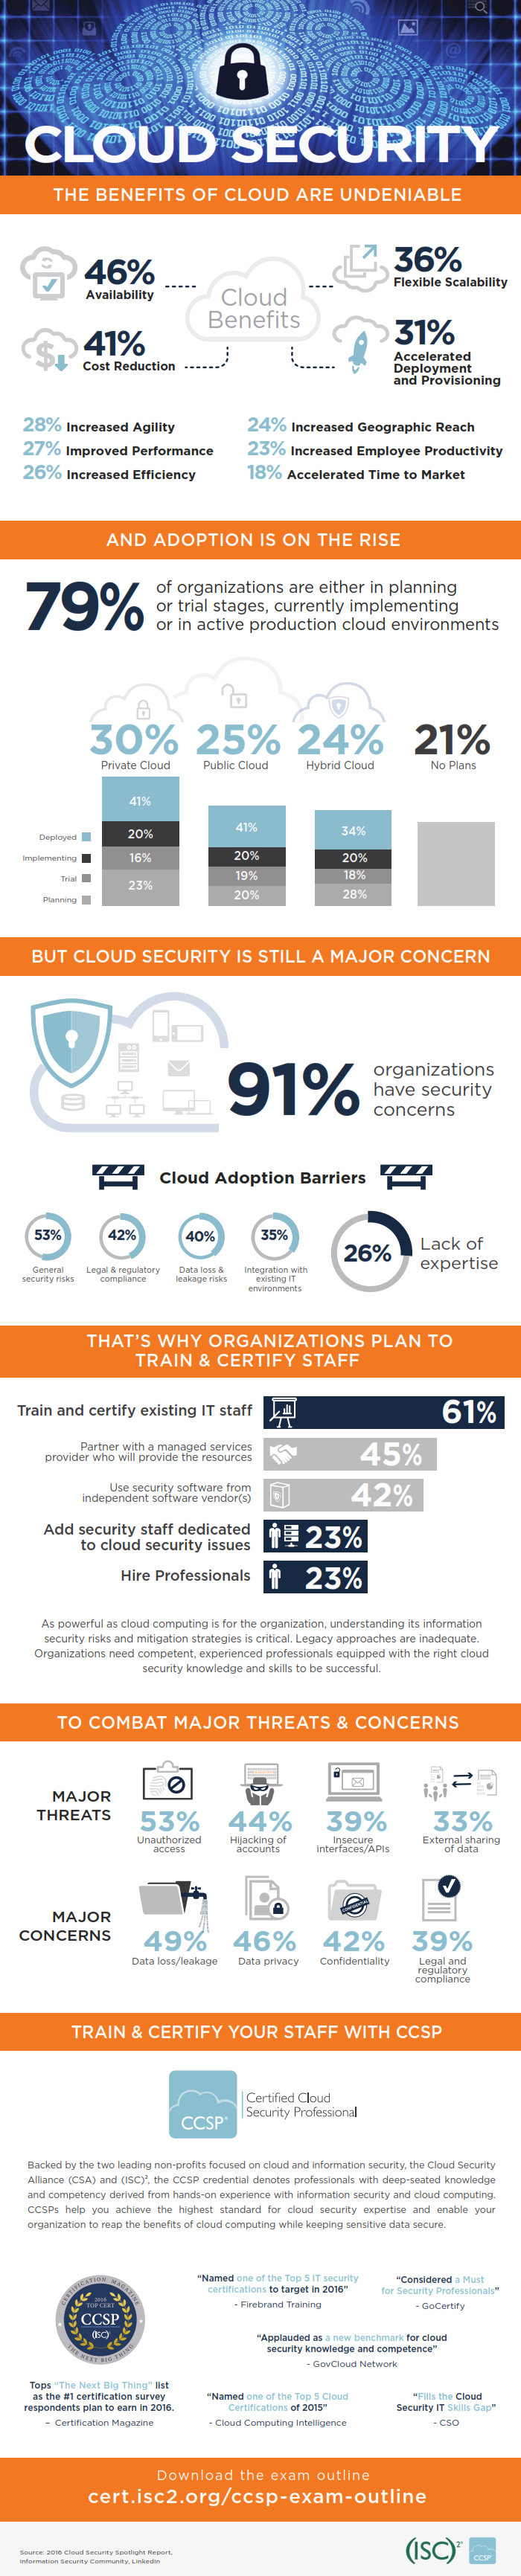 cloud-security-report-infographic-2016_001